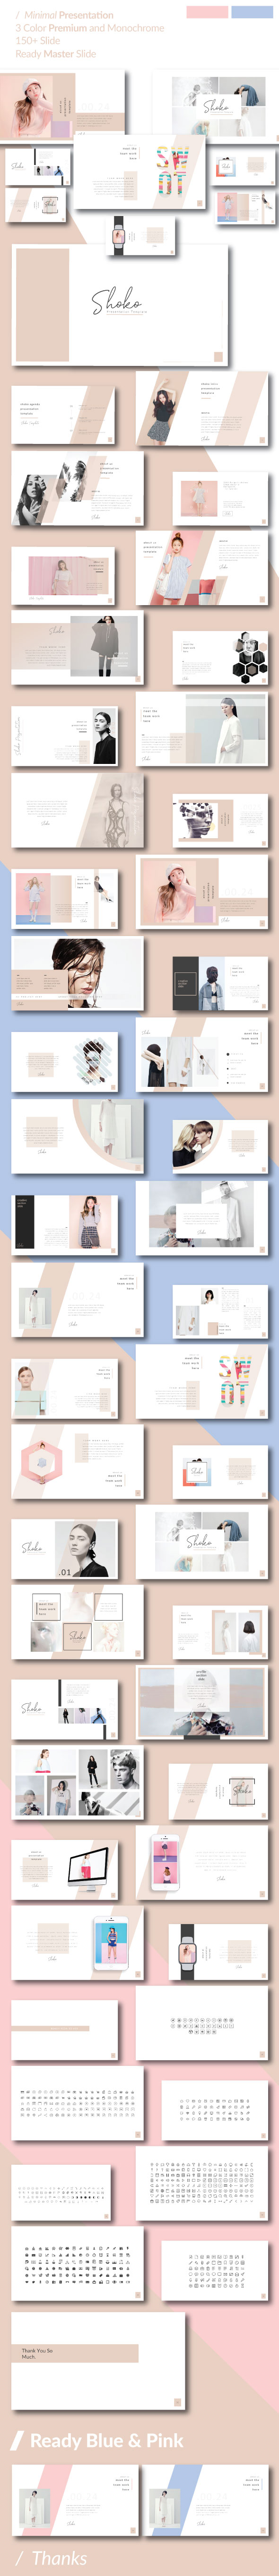 Shoko Minimal Google Slide Template - Google Slides Presentation Templates